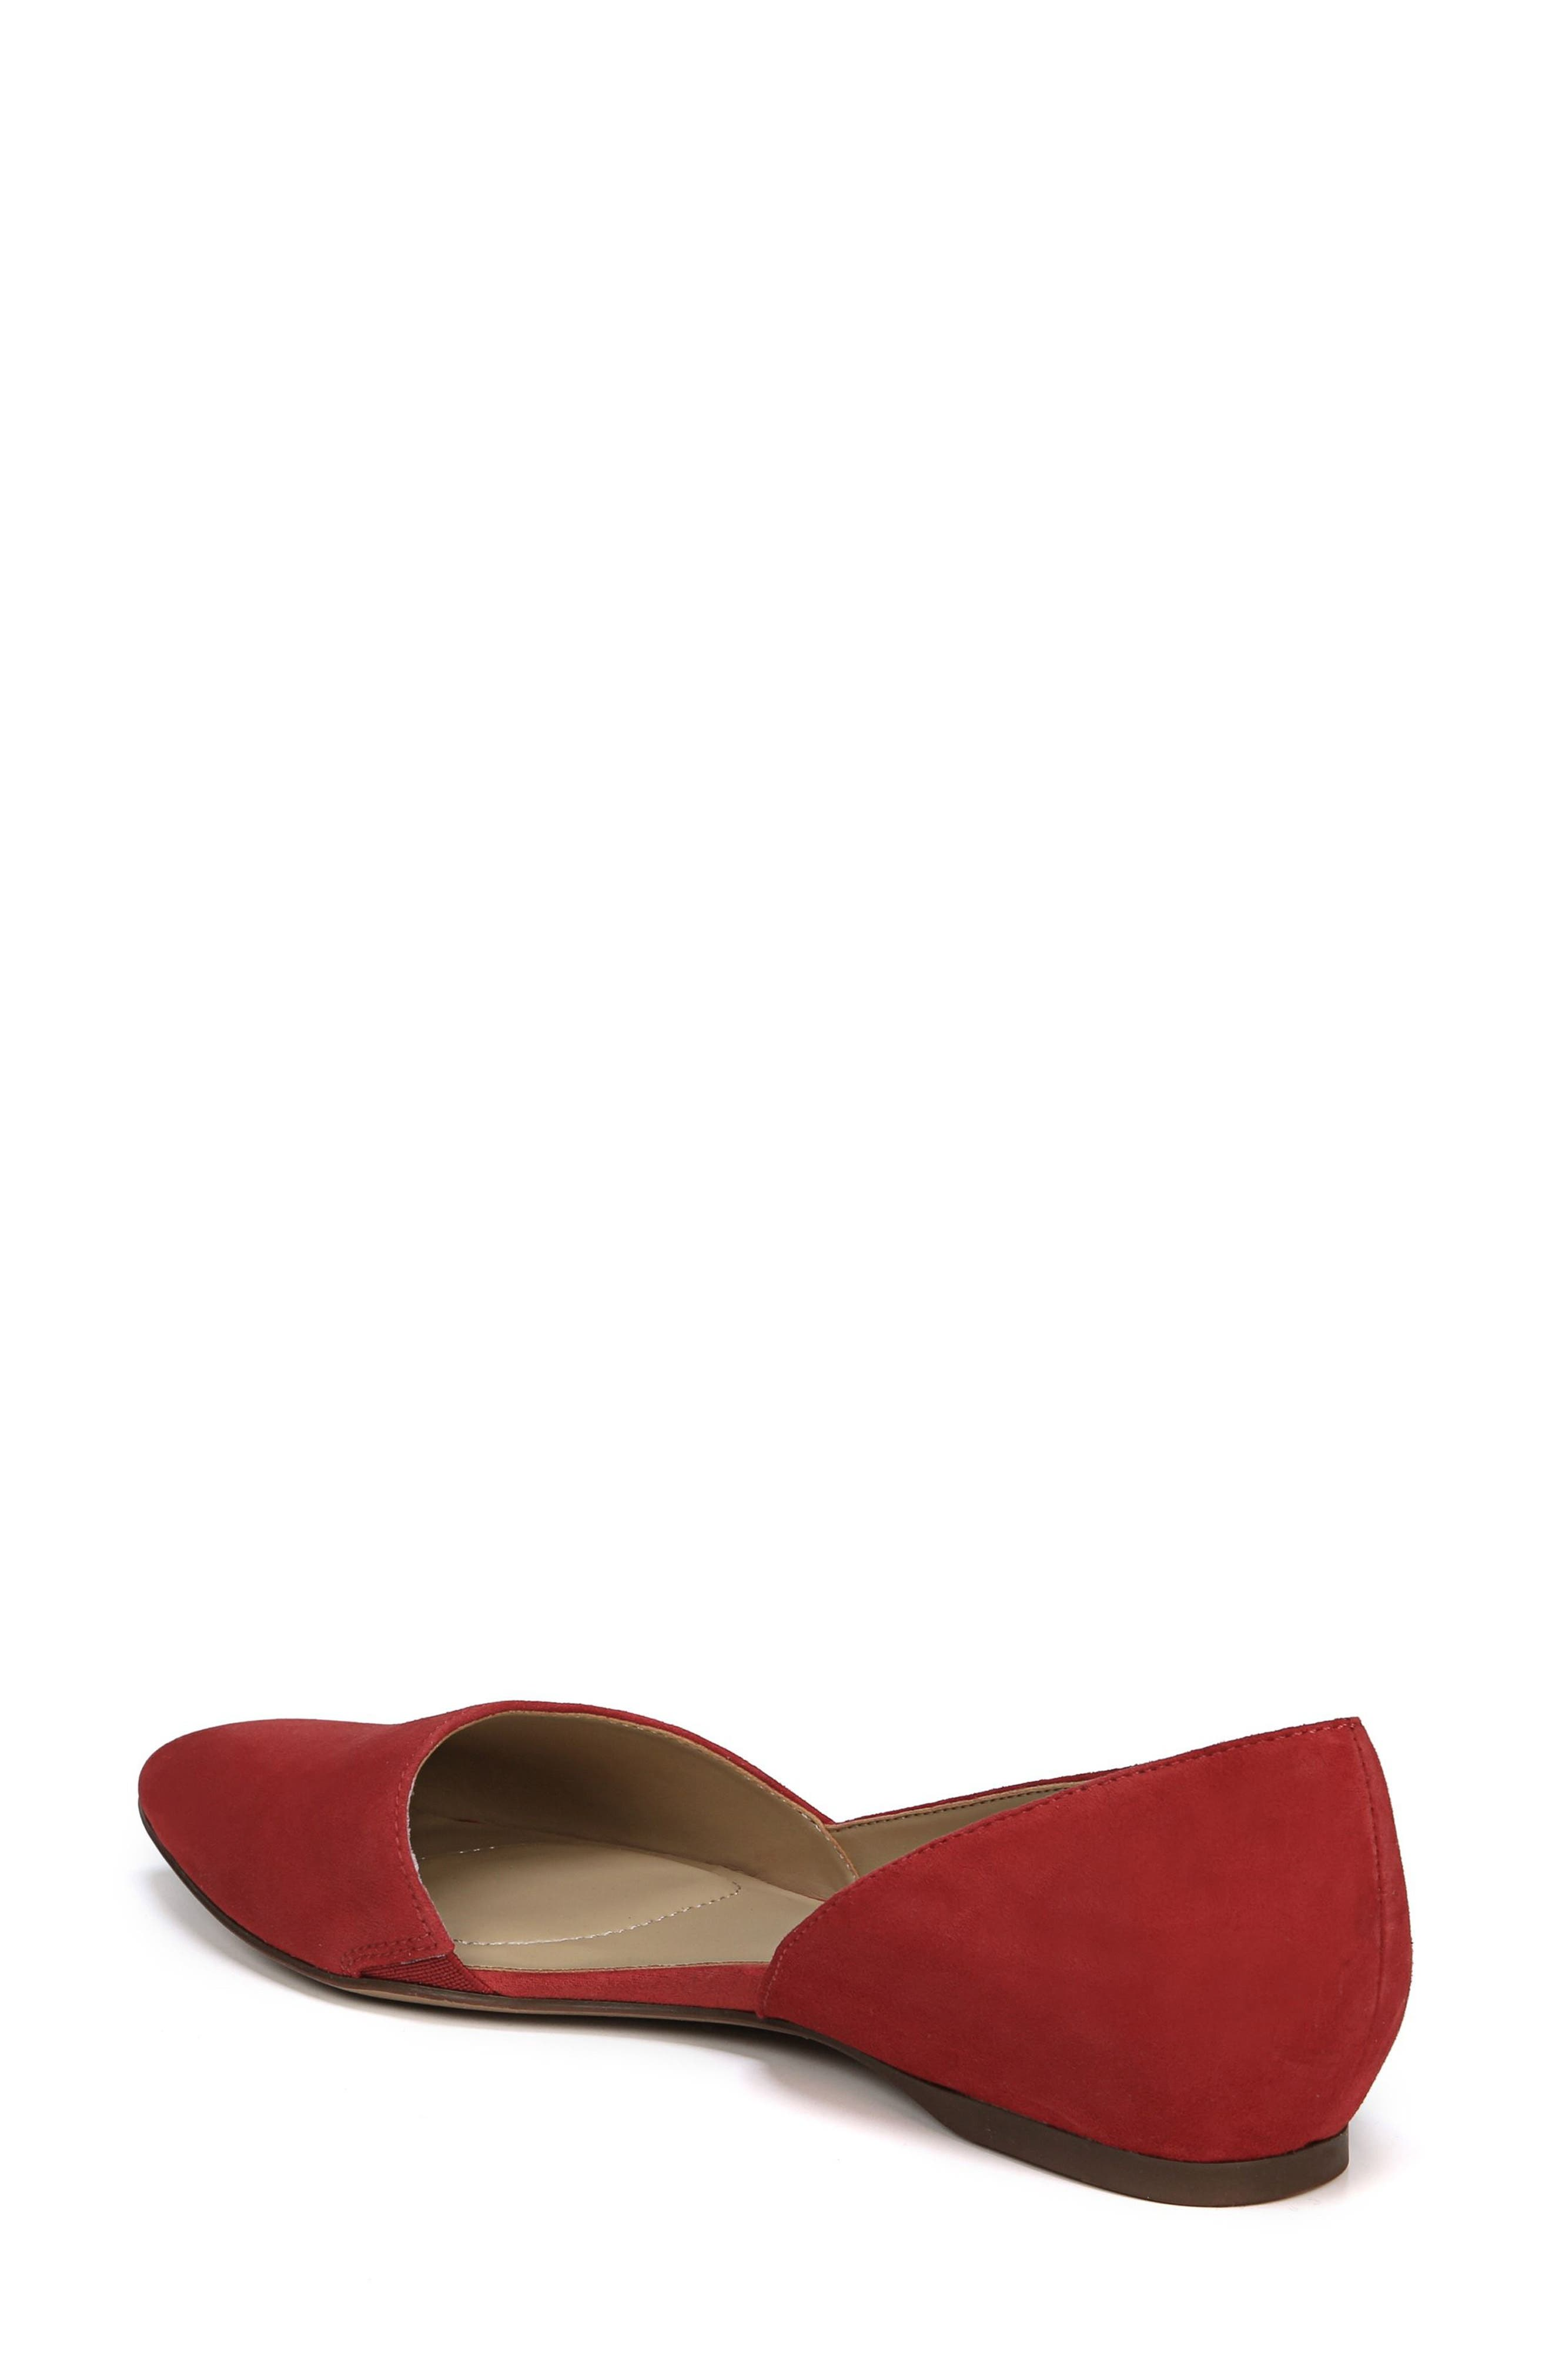 Samantha Half d'Orsay Flat,                             Alternate thumbnail 2, color,                             Hot Sauce Suede